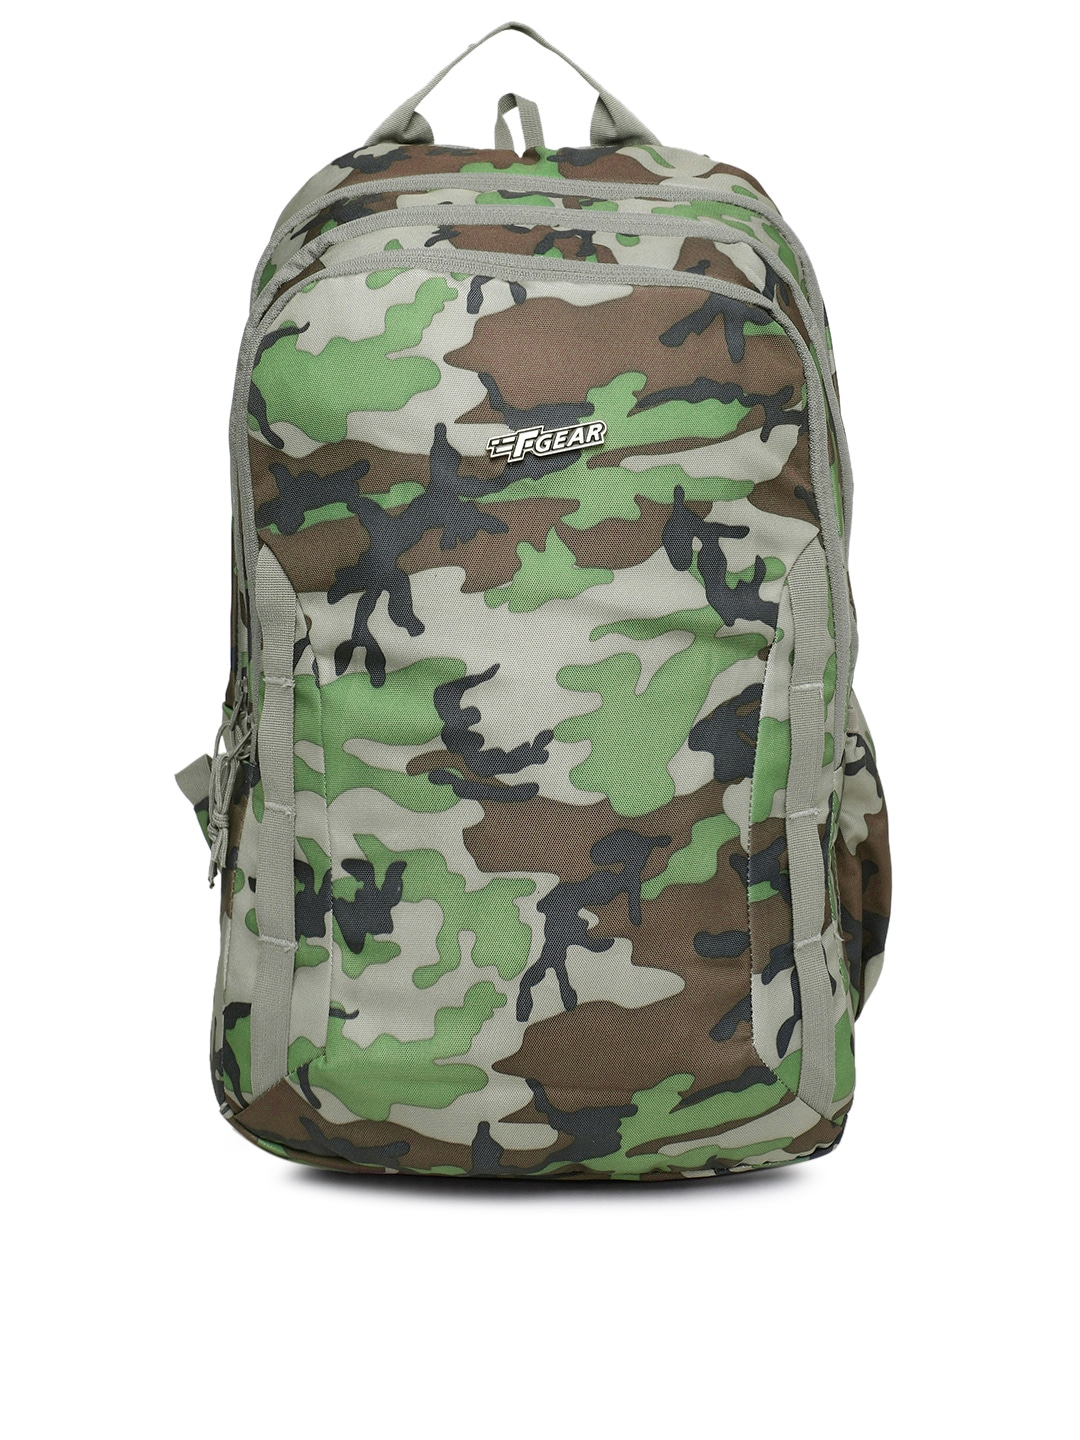 04345d6c26e74 F Gear - Exclusive F Gear Online Store in India at Myntra